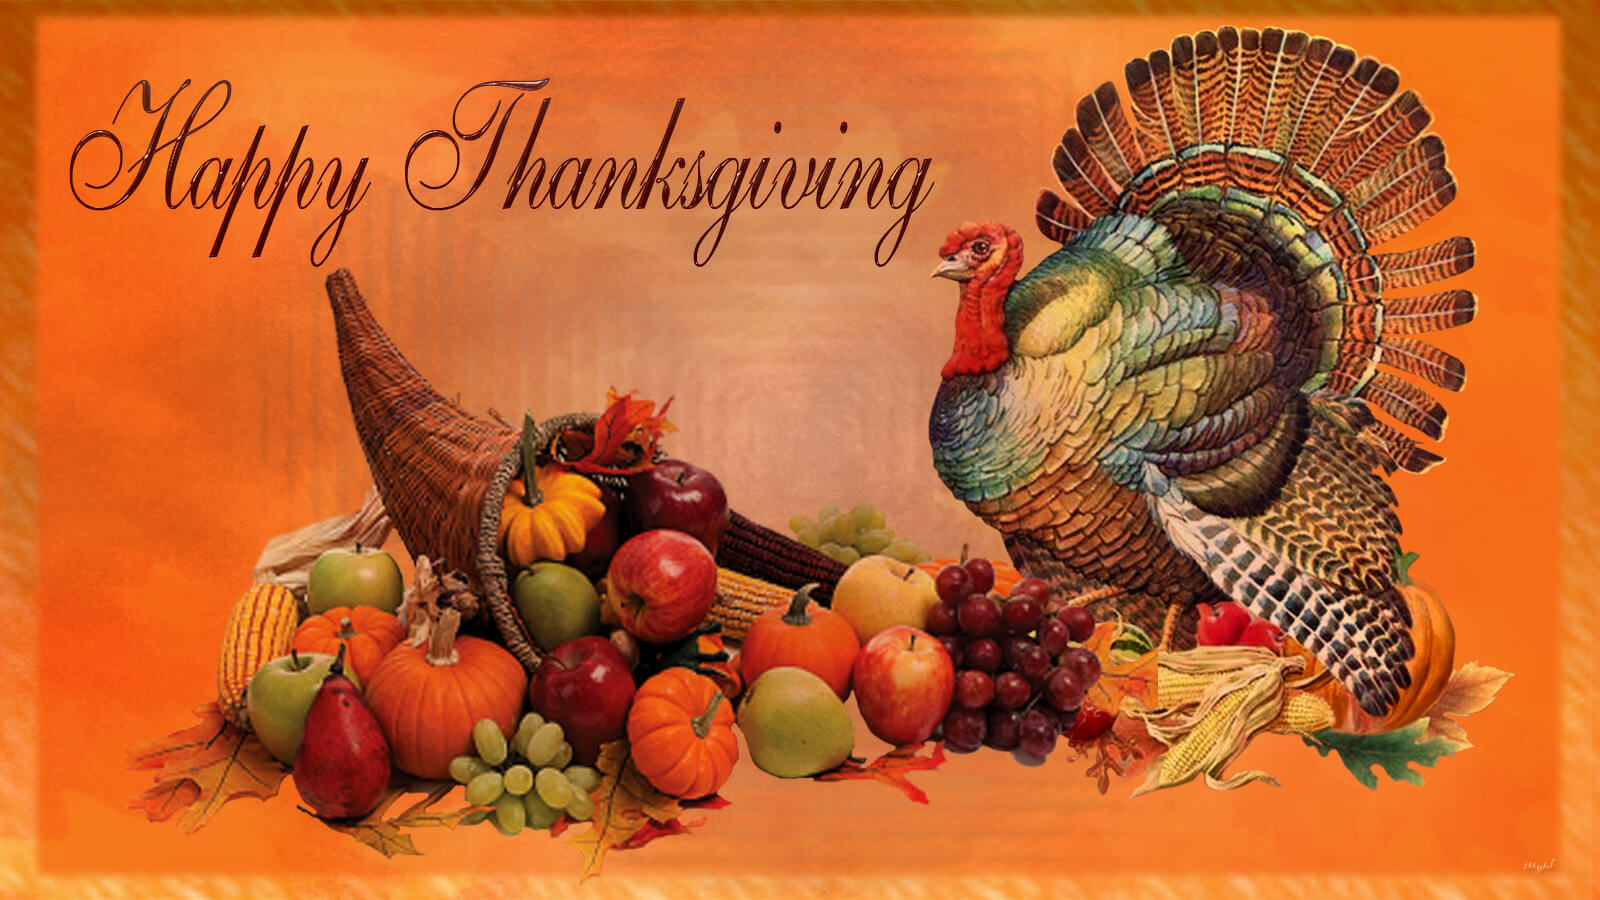 8th annual thanksgiving day - 1280×720